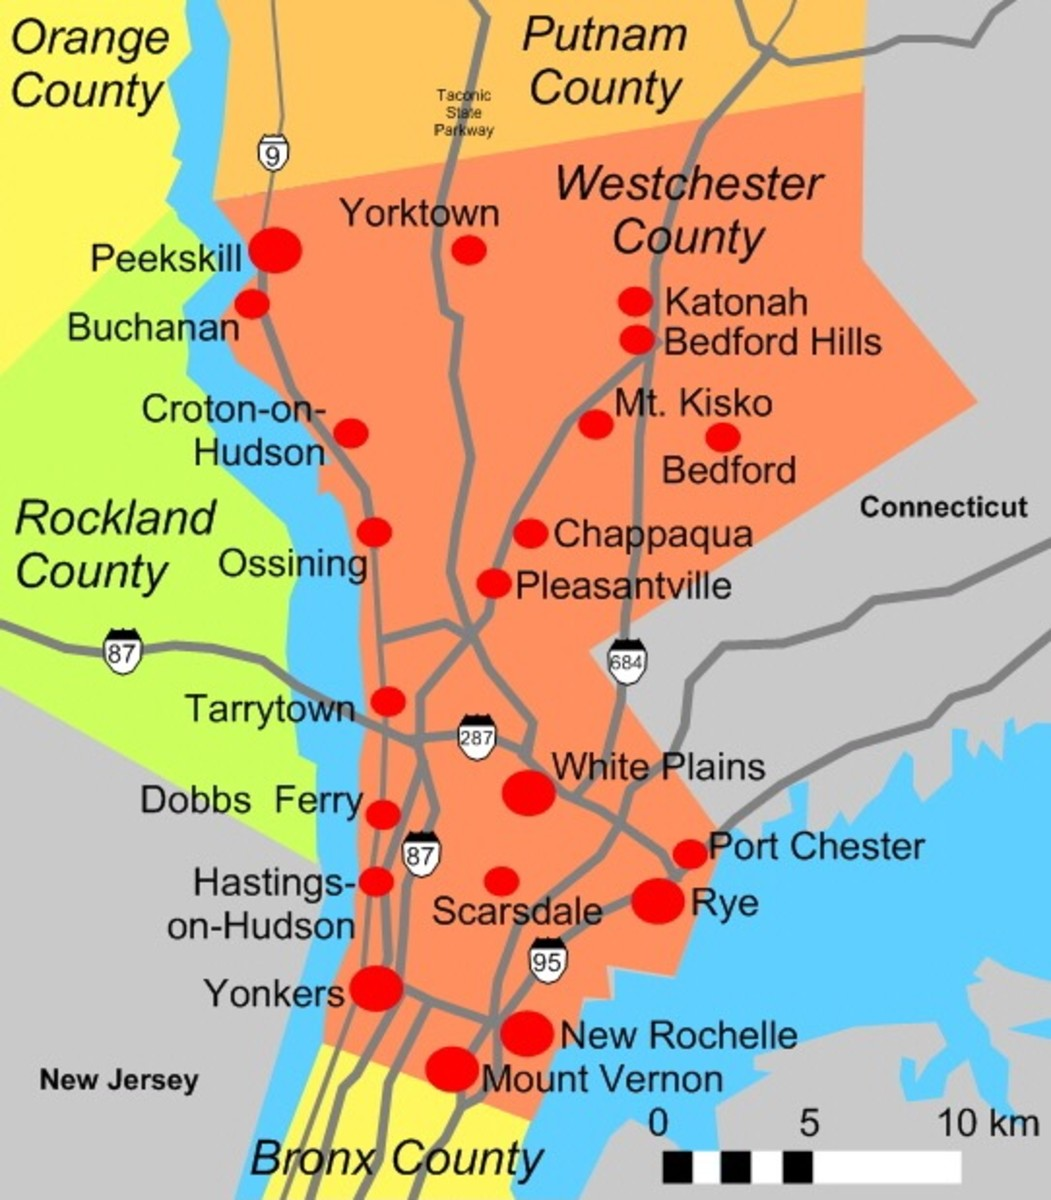 Westchester County Gems - My Favorite Places in Westchester